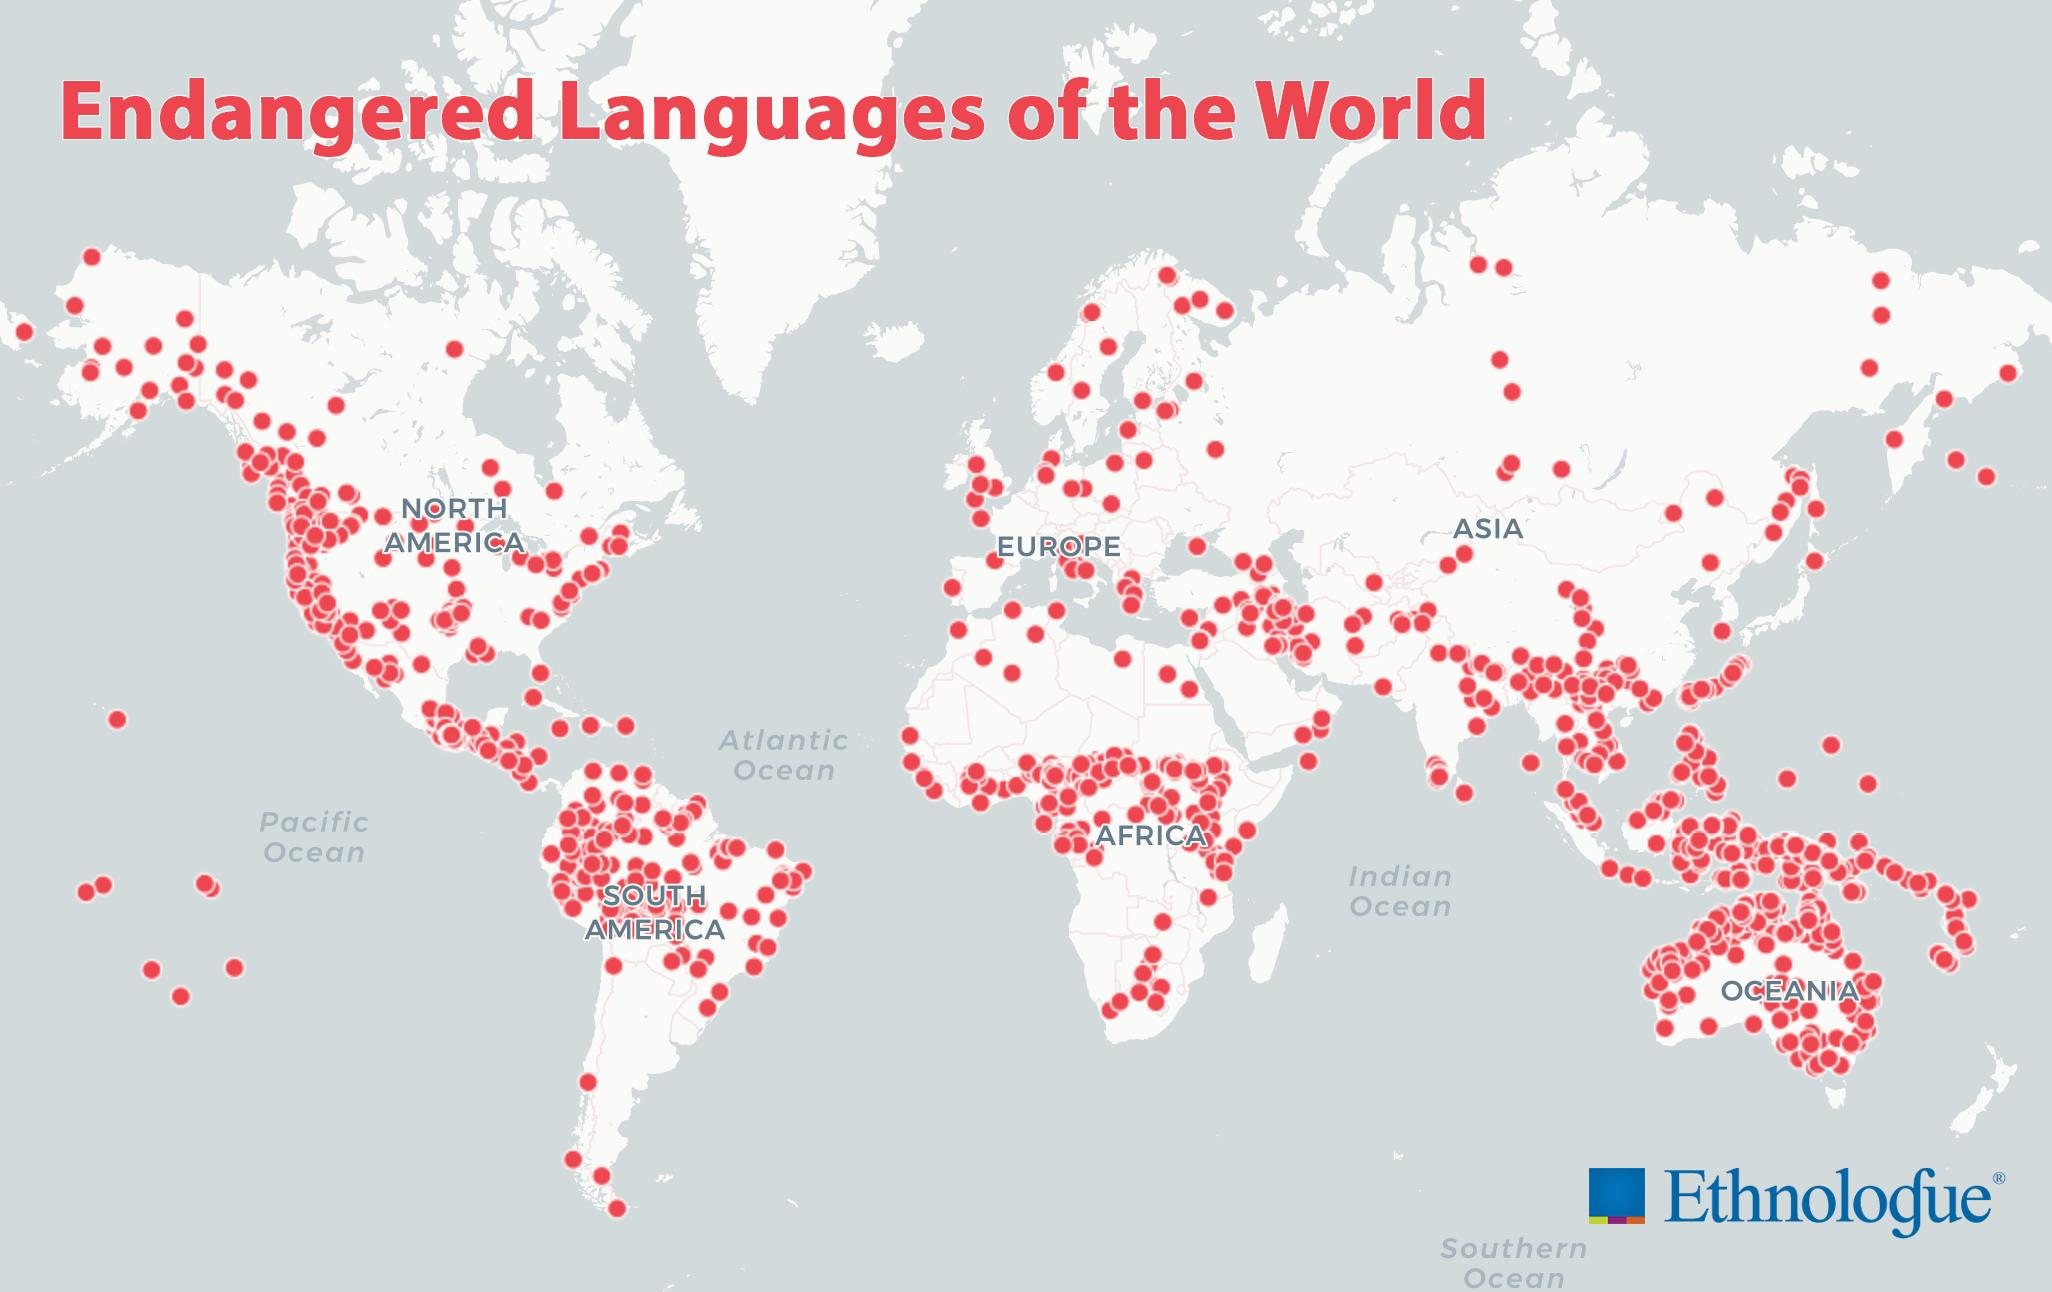 2926 languages endangered as of 2020 – 41 of all living languages